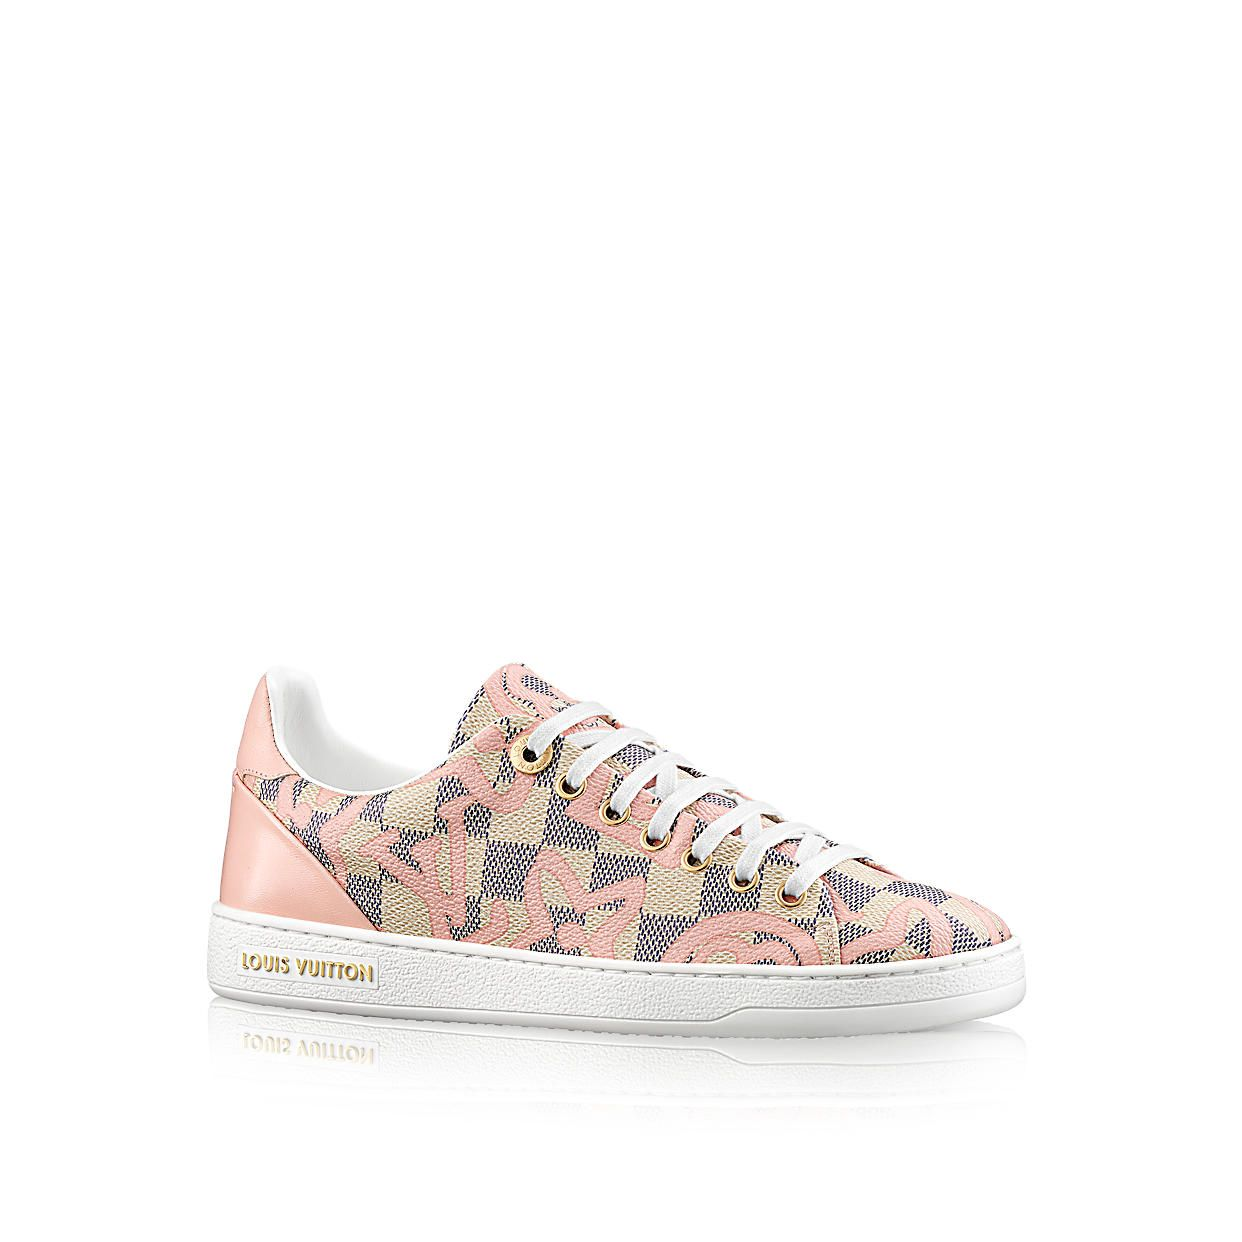 afe01b9a7950 Bora Bora Sneaker in WOMEN s SHOES collections by Louis Vuitton - they  would match my bag perfectly... maybe